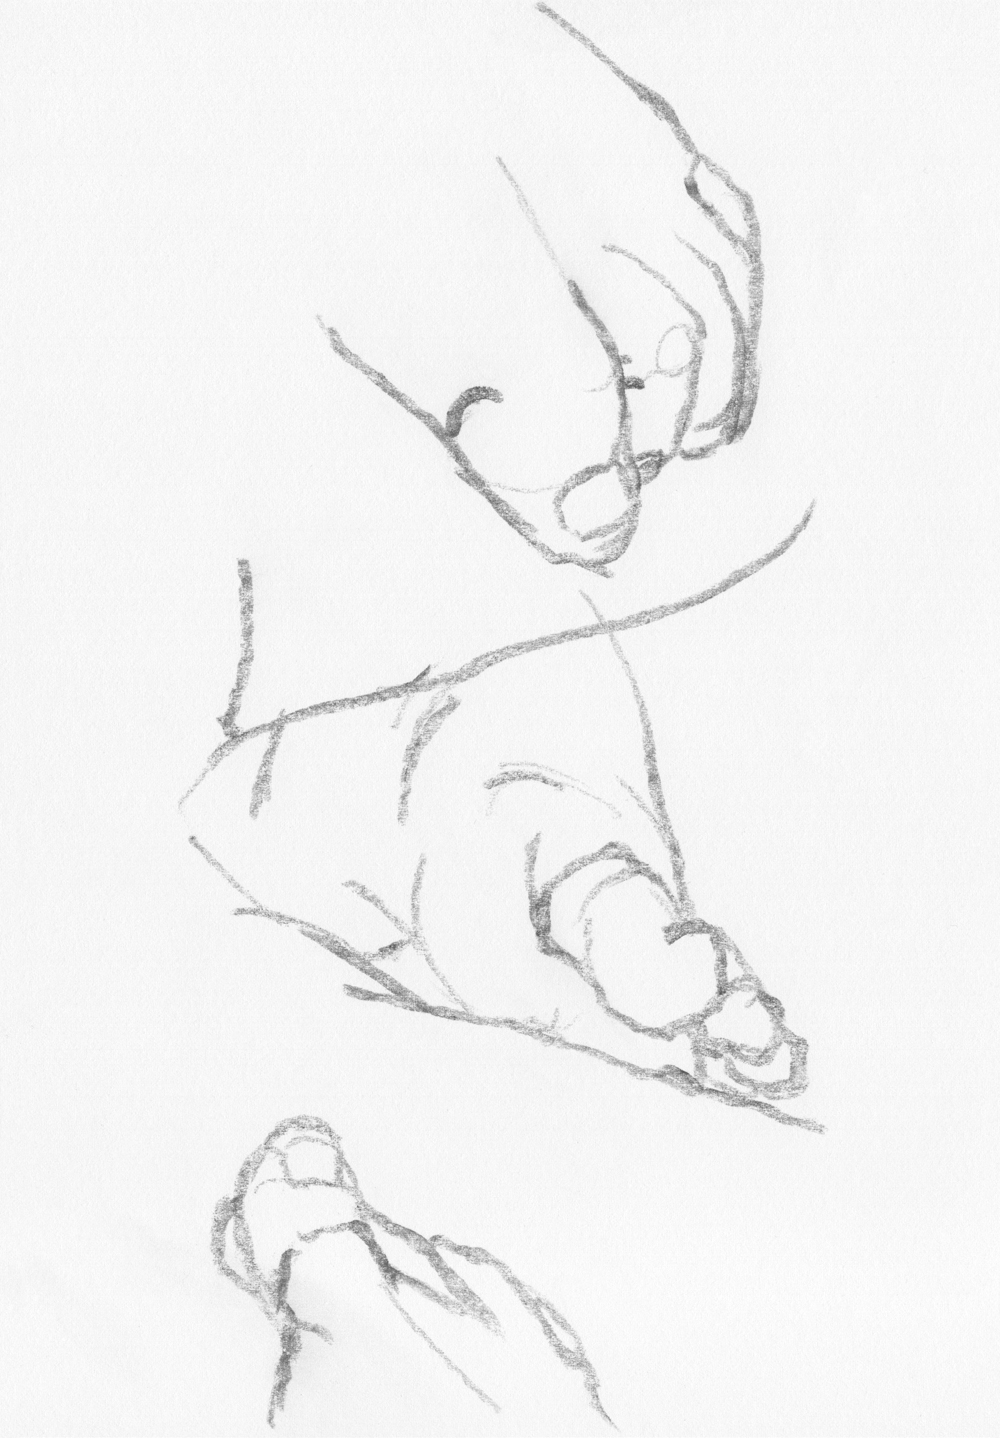 Sketches - Pencil Drawings - Figure Drawing : The sketches of my foot I, pencil drawing, 2017.